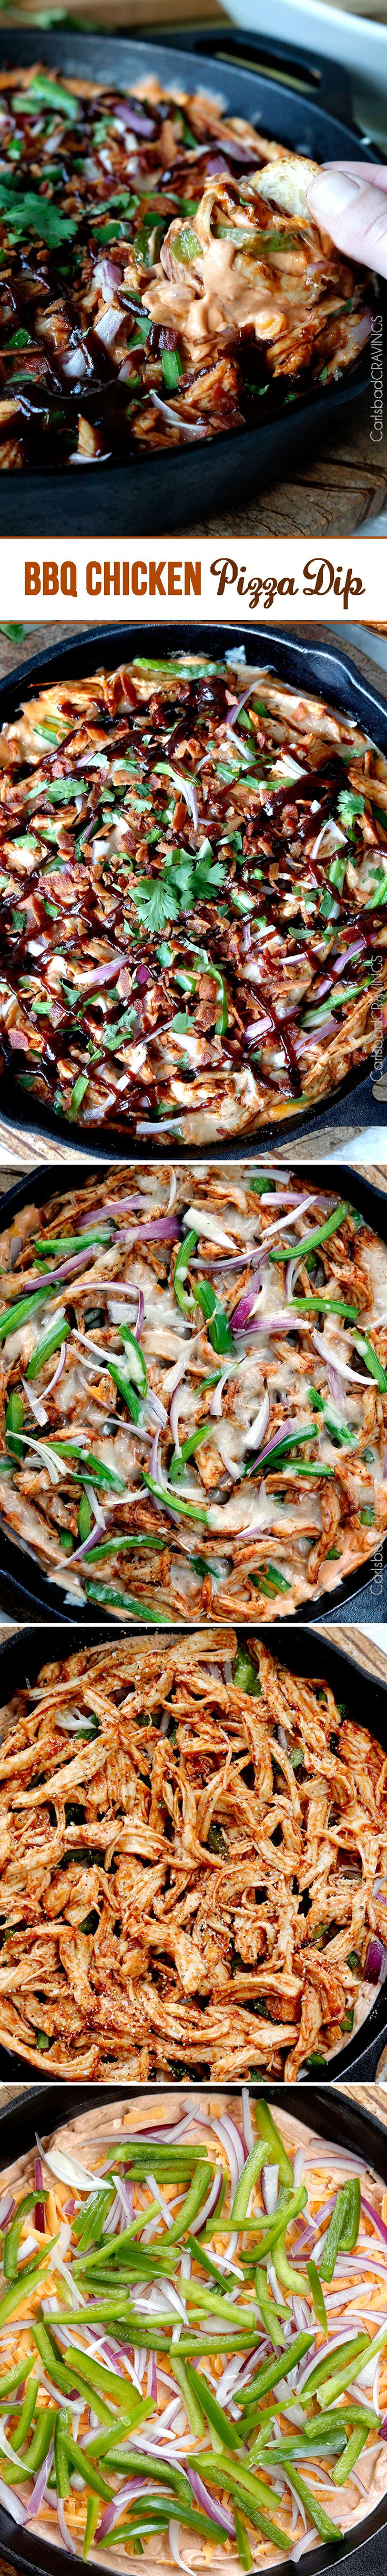 Perfect for New Years! BBQ Chicken Pizza Dip - cheesy BBQ cream cheese with layers of BBQ chicken, red onions, bell peppers and mozzarella - all the flavors of the pizza but in a dip!